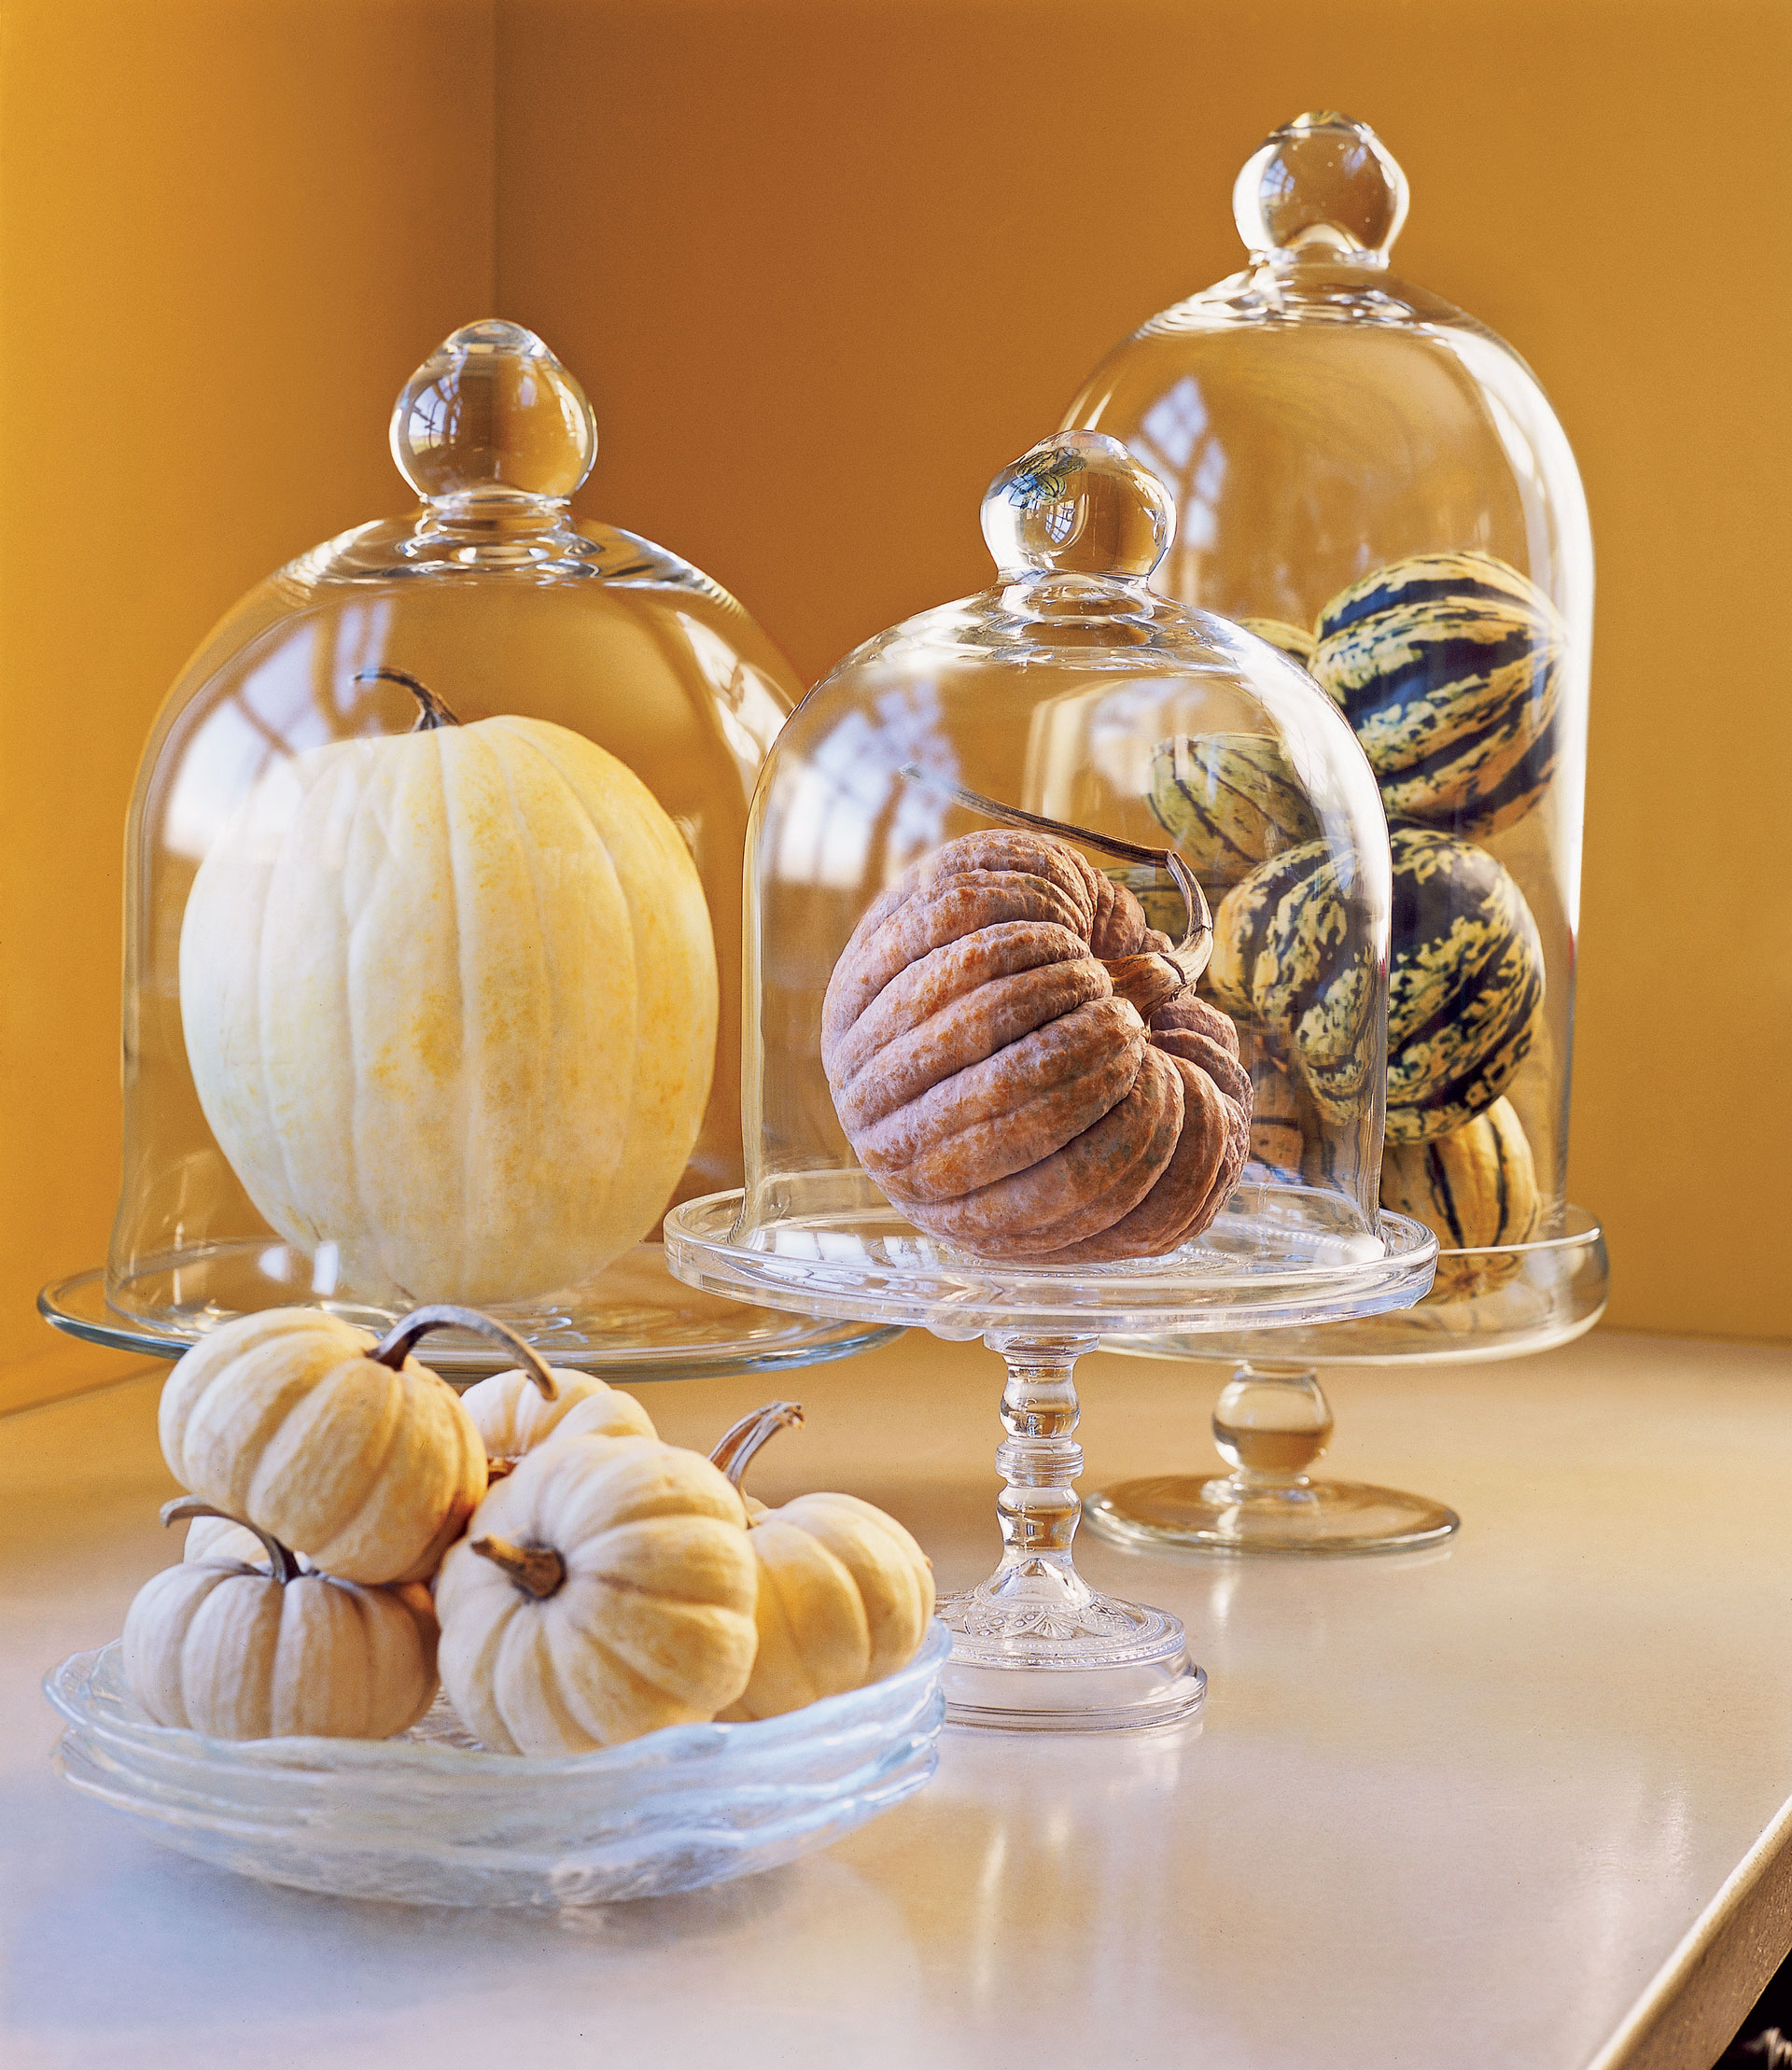 ... Luxury Classy Fall Decorations : fall decorating ideas with pumpkins - www.pureclipart.com